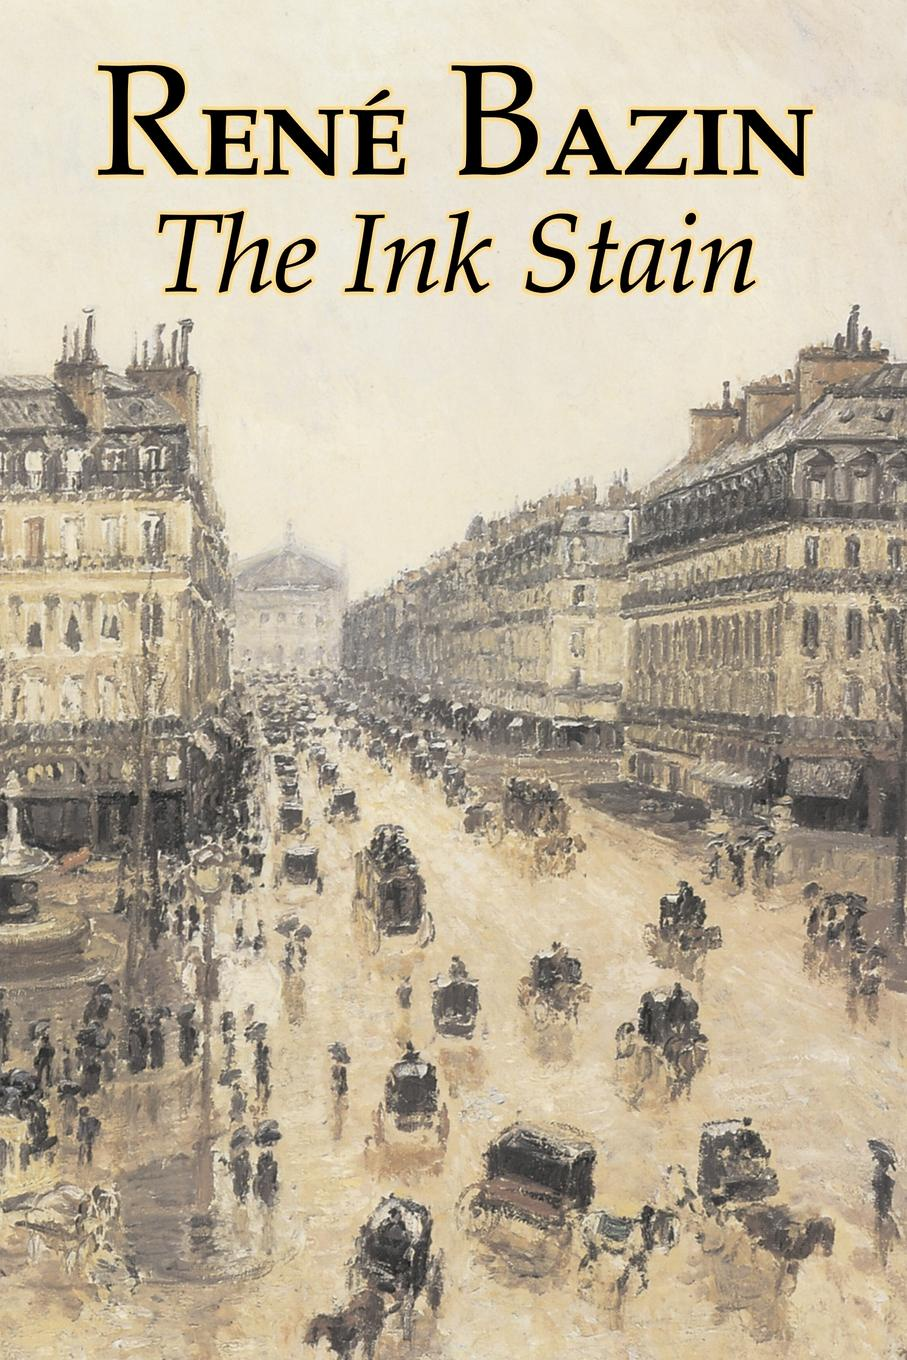 Rene Bazin The Ink Stain by Rene Bazin, Fiction, Short Stories, Literary, Historical